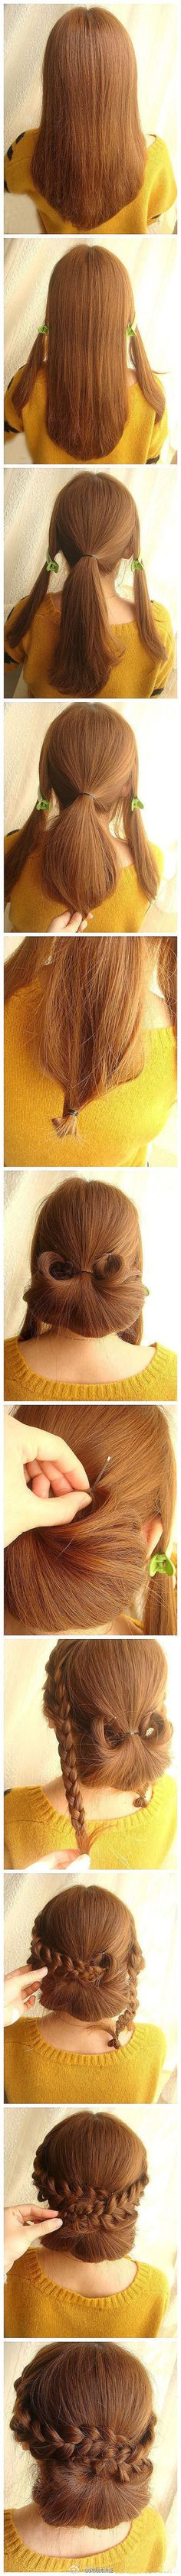 I am going to try this, wonder how it will turn out with curly hair!!